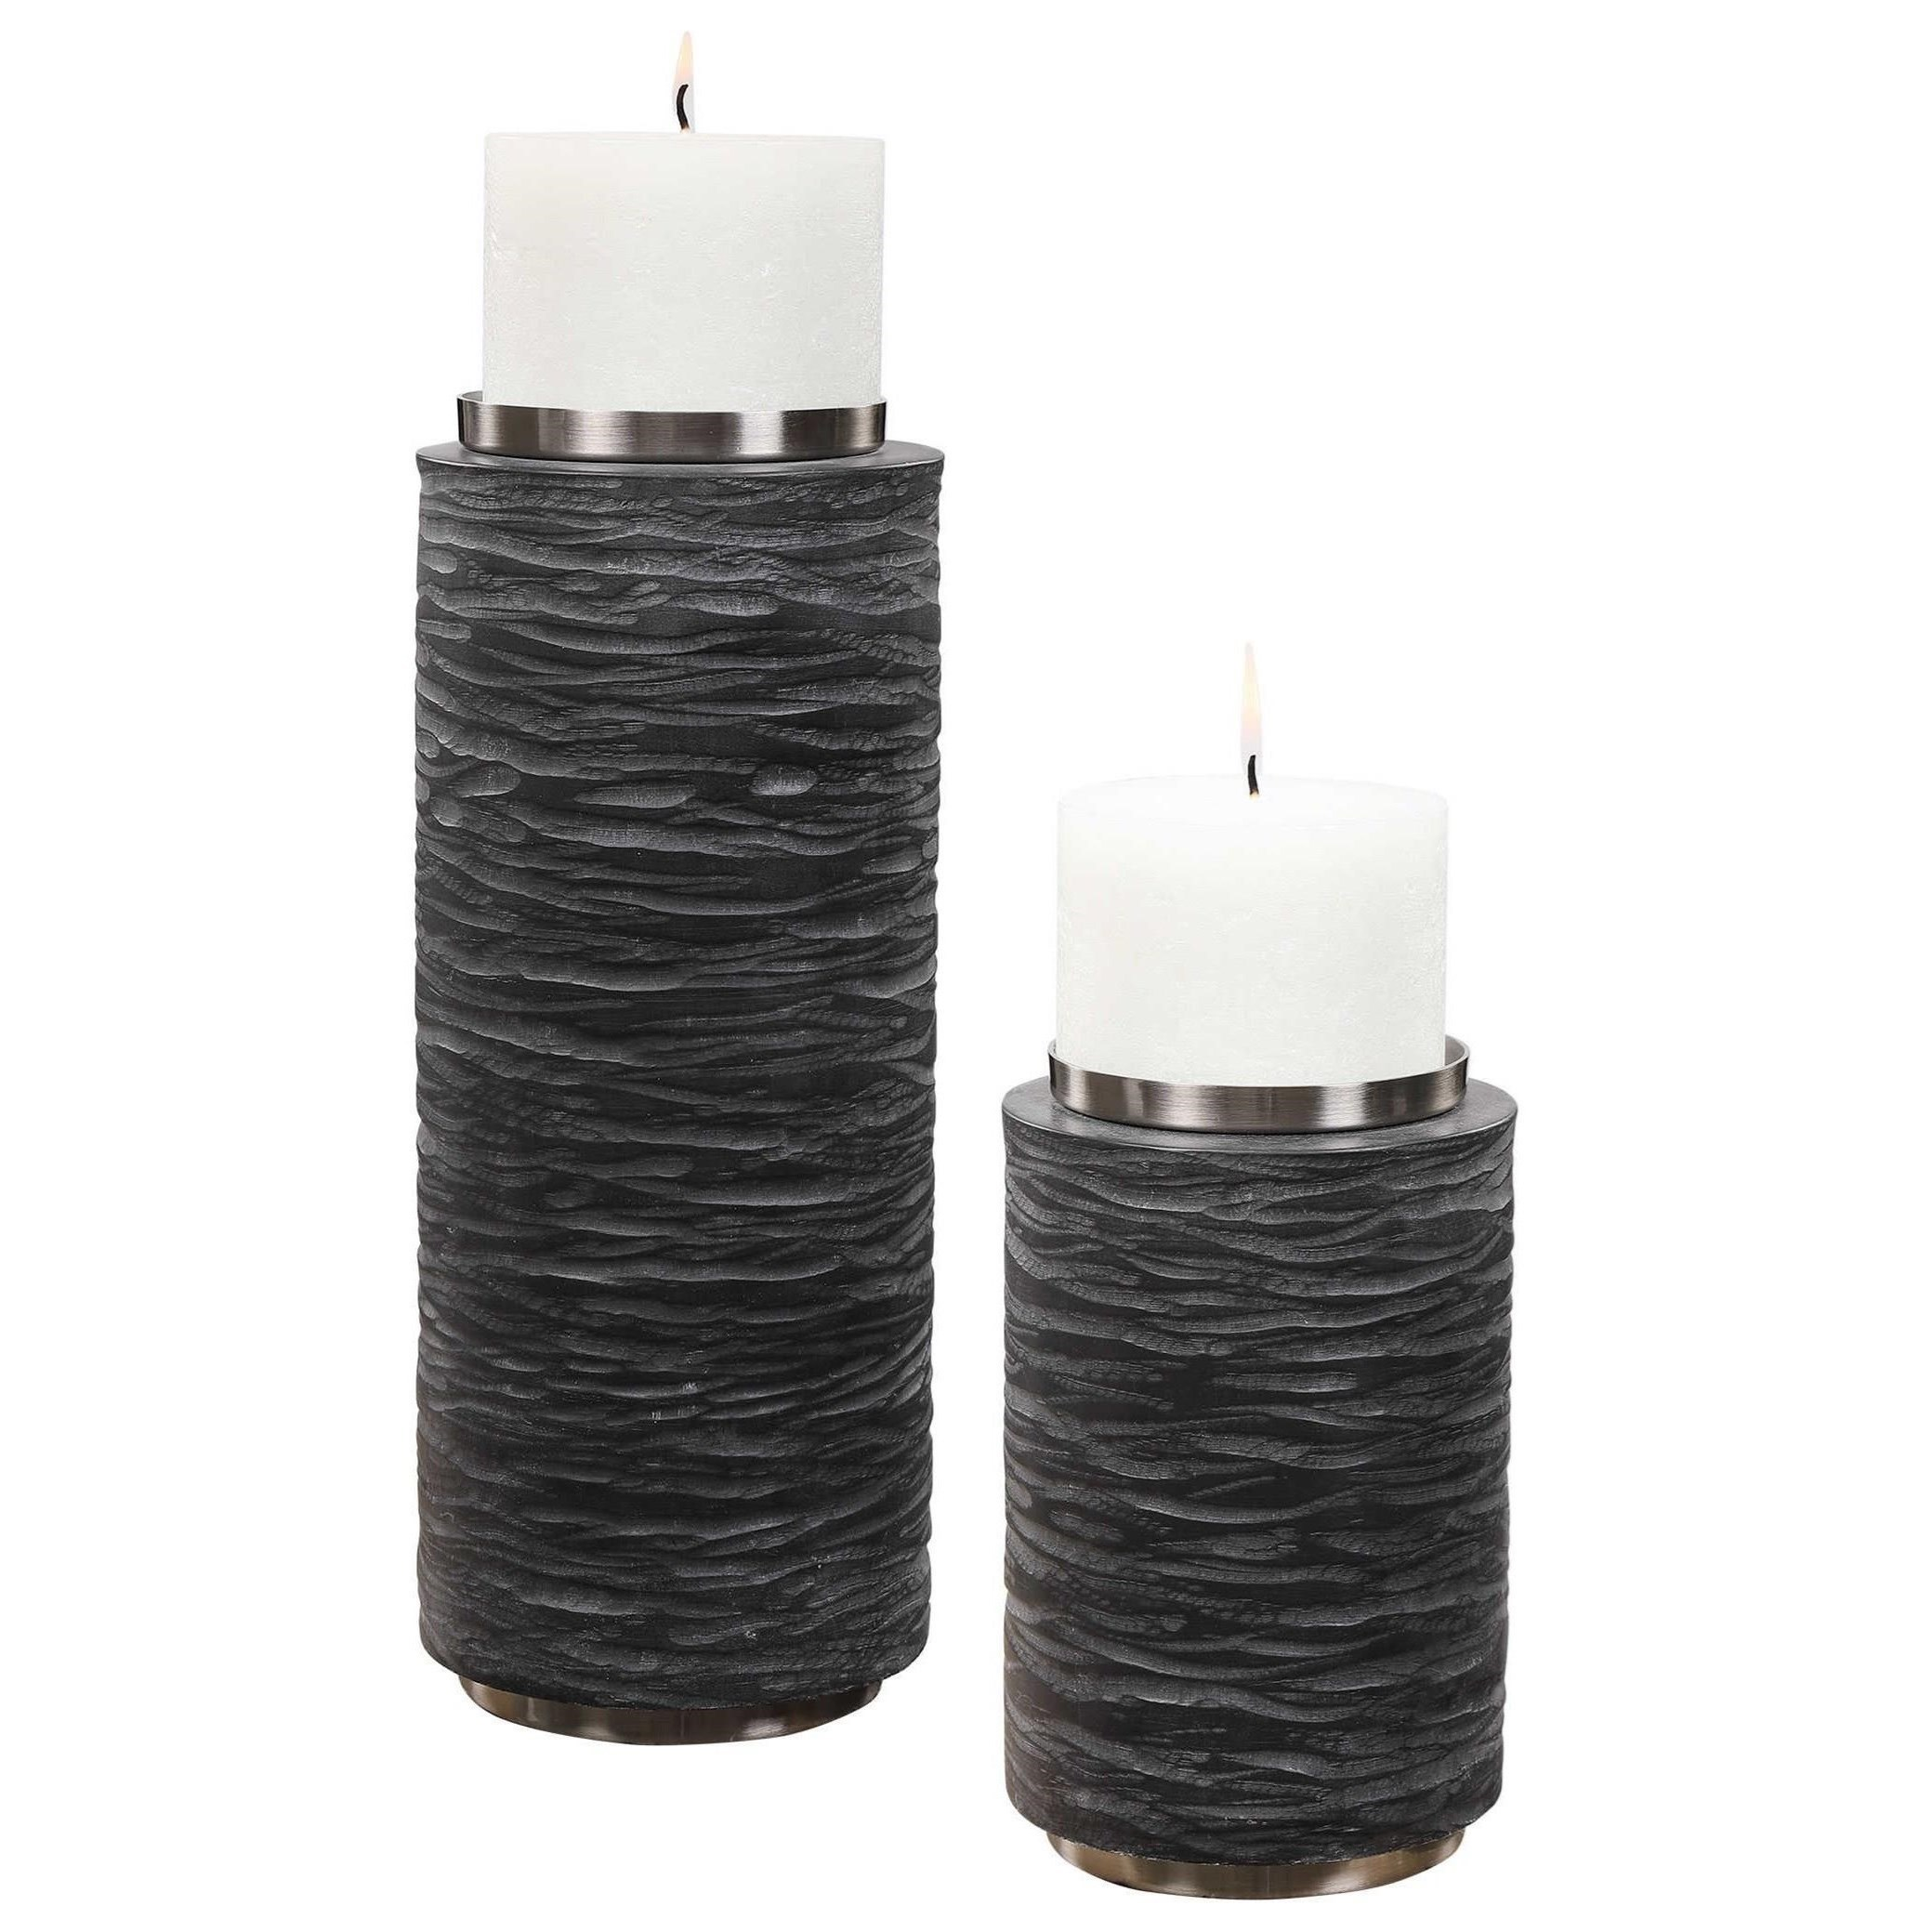 Accessories - Candle Holders Stone Gray Candleholders, S/2 by Uttermost at Mueller Furniture